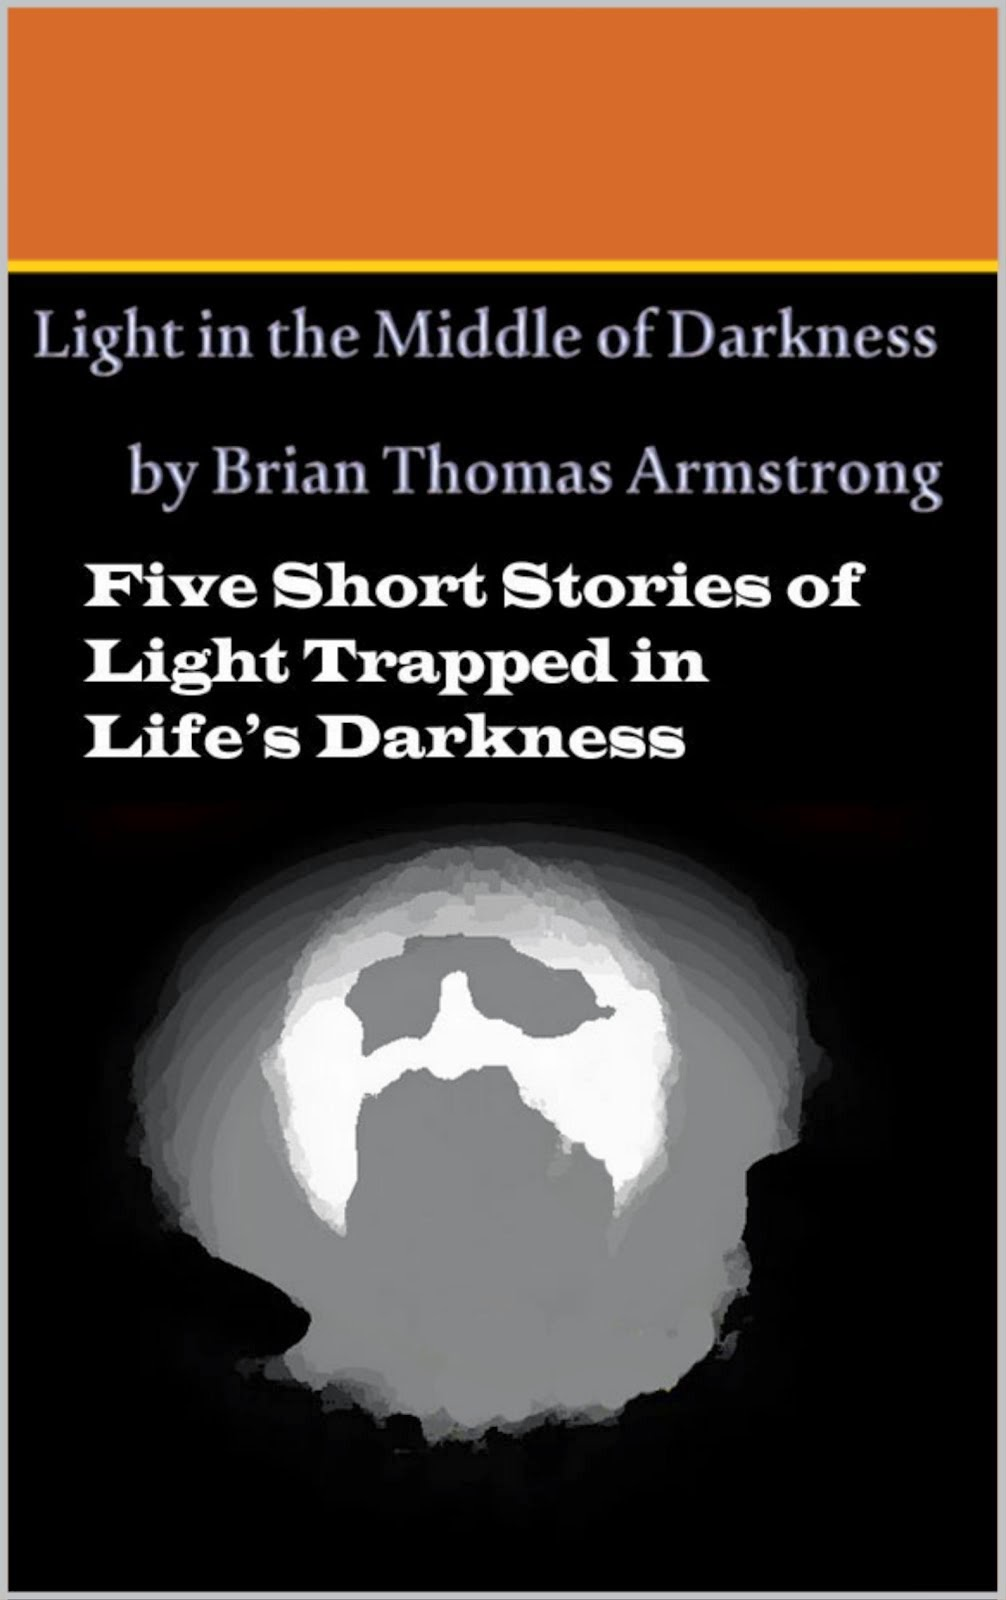 Light in the Middle of Darkness